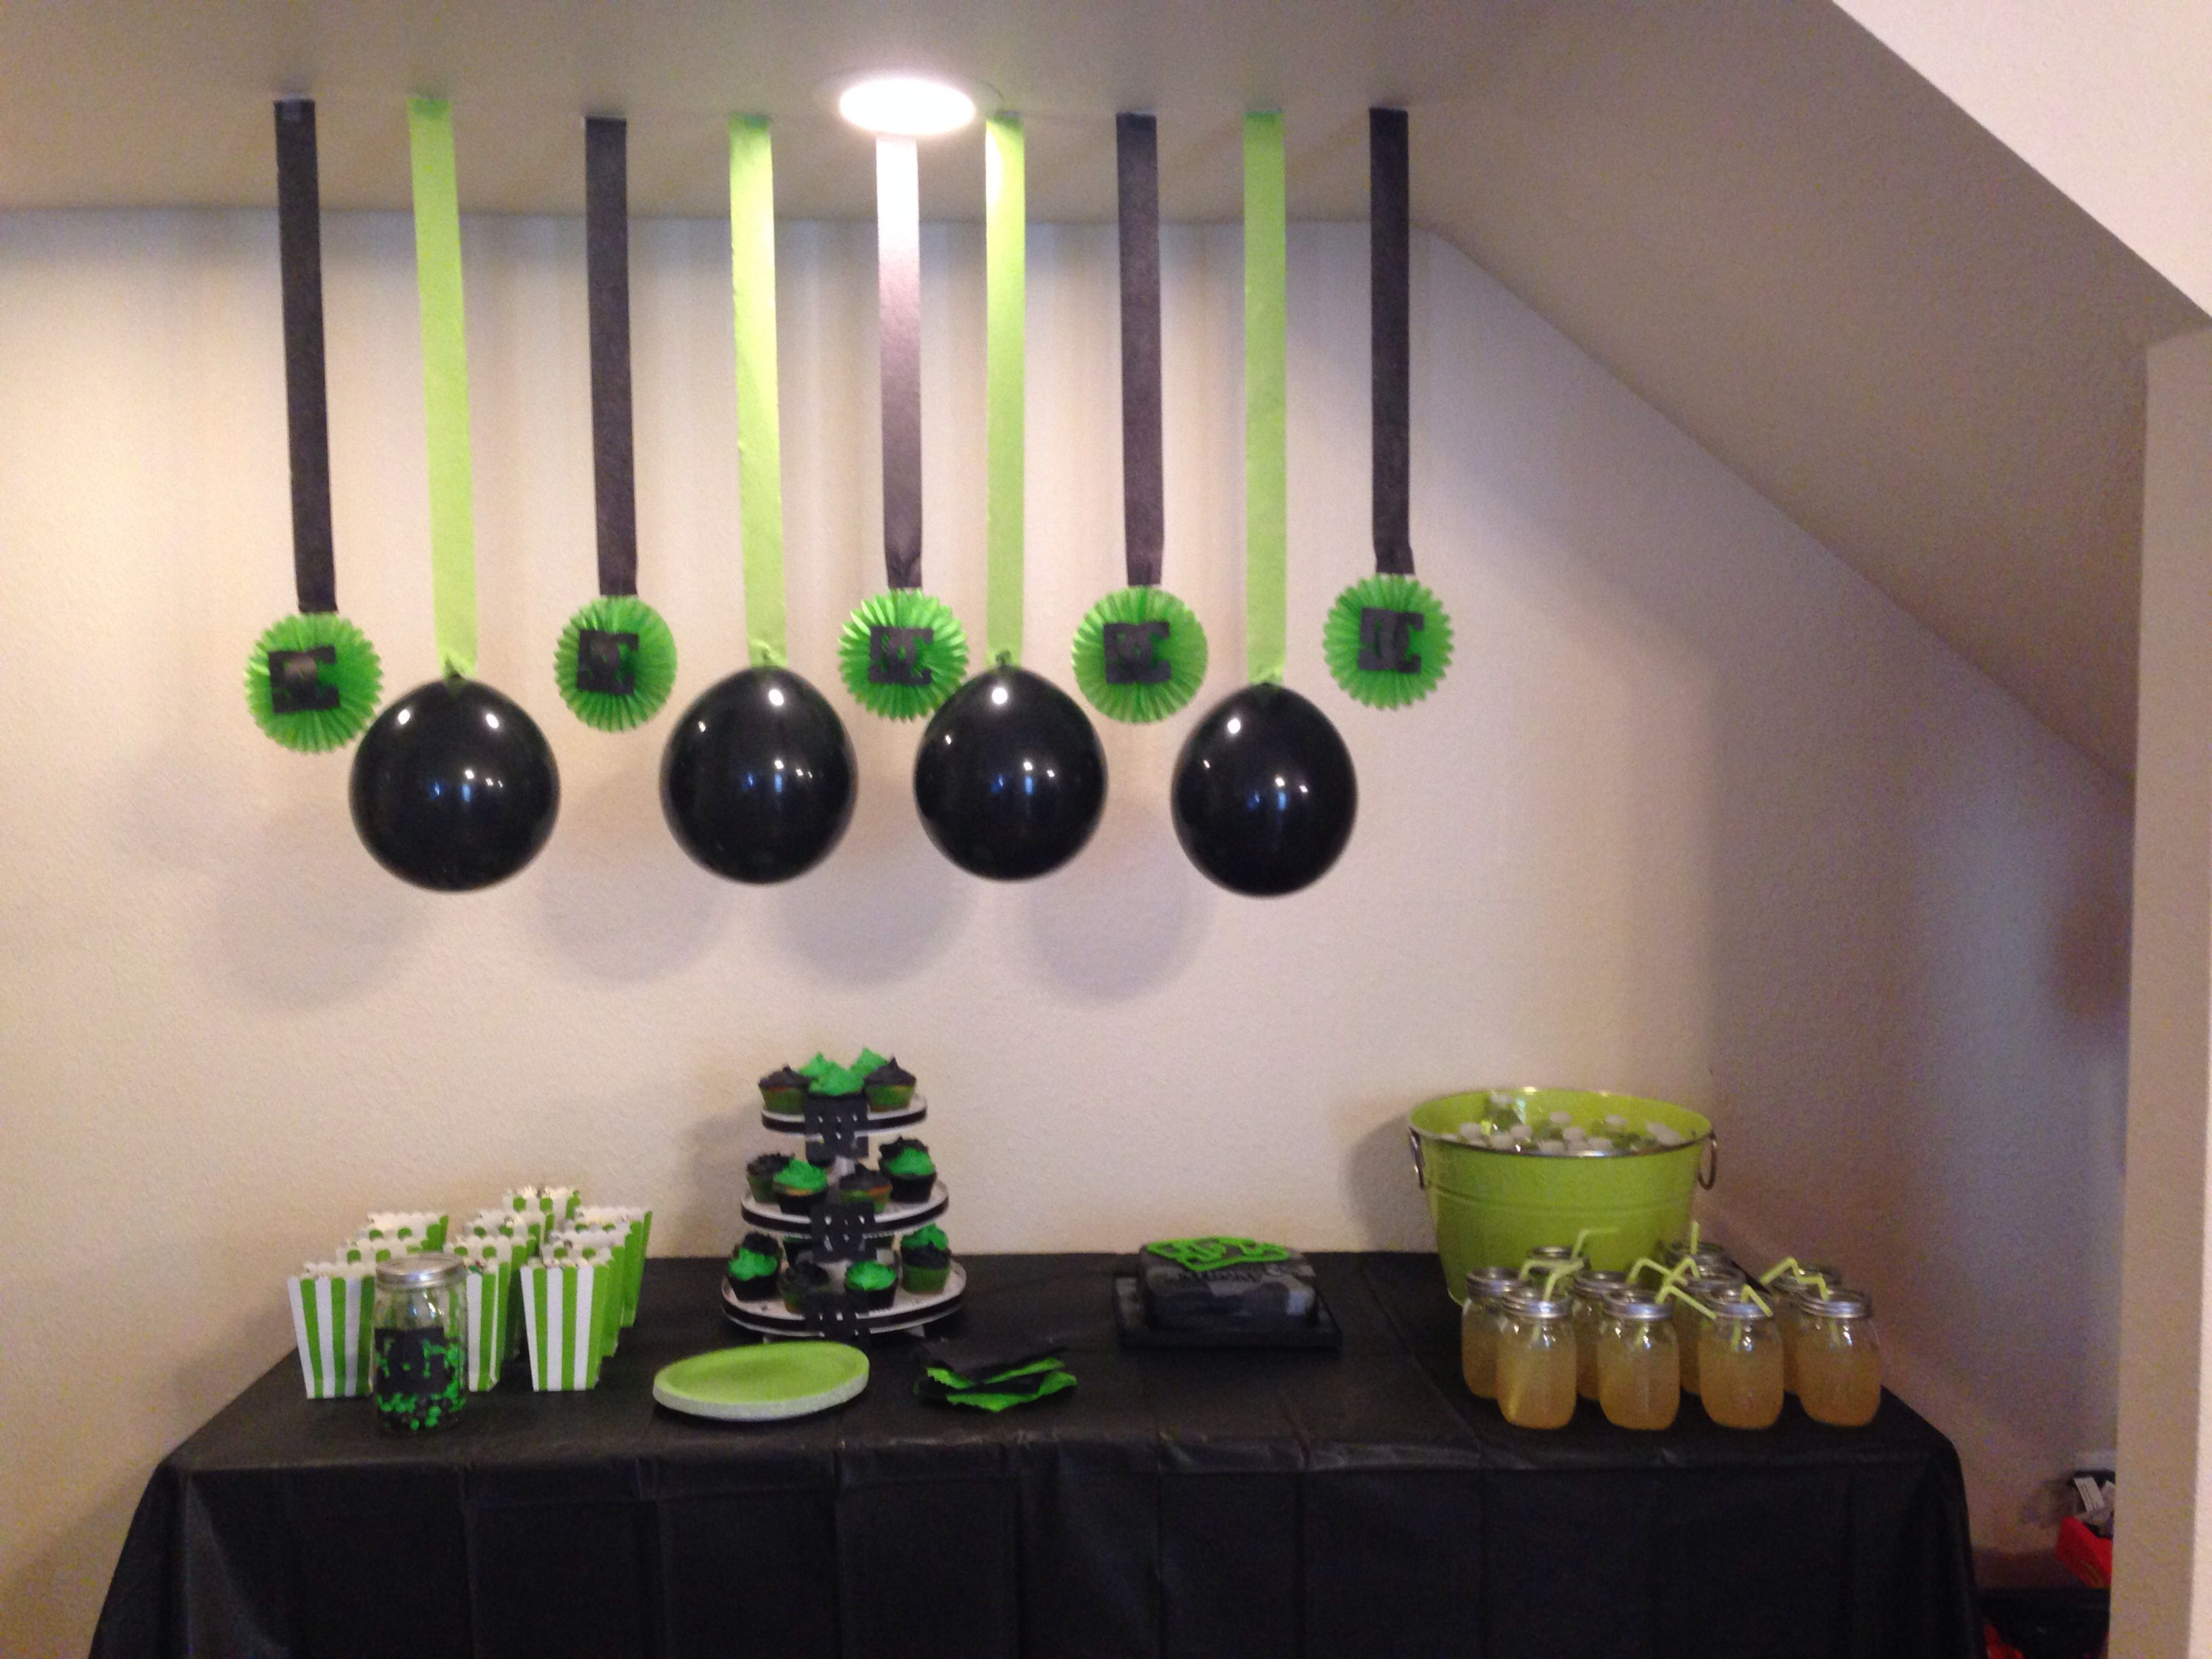 Lime green and black decorations to go with a DCCamo themed